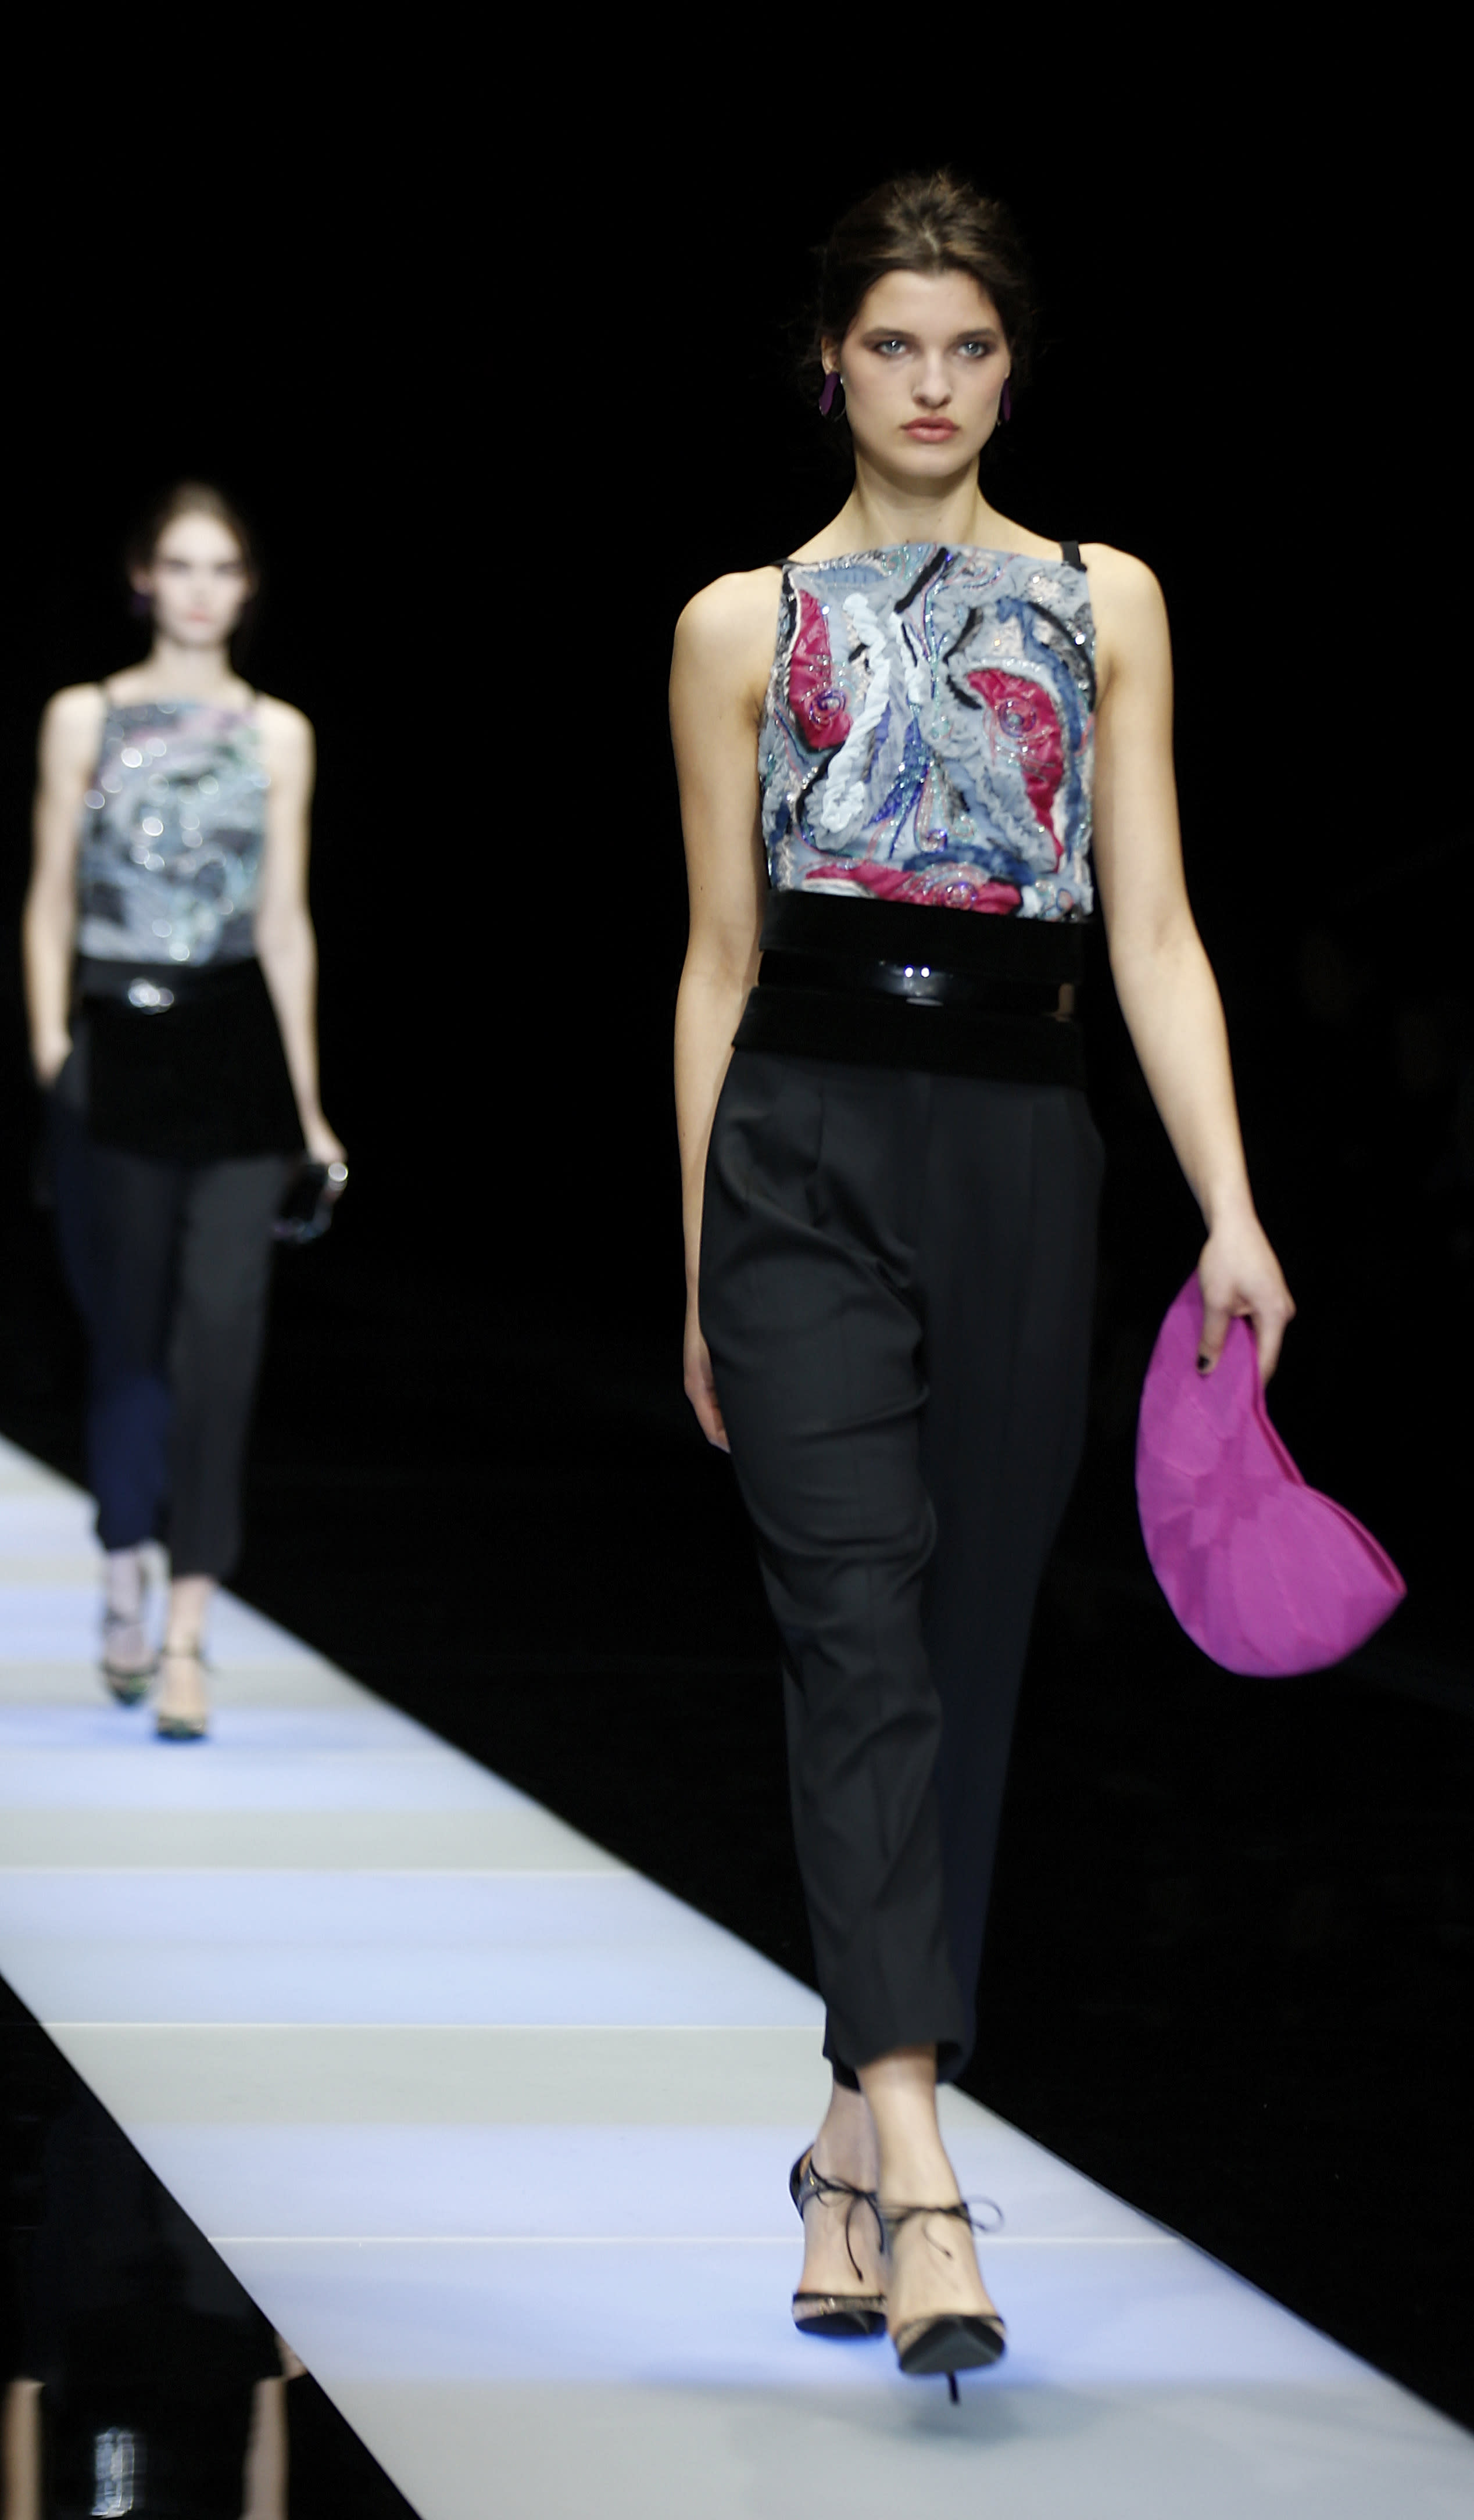 Armani creates new winter trousers with tulip flair